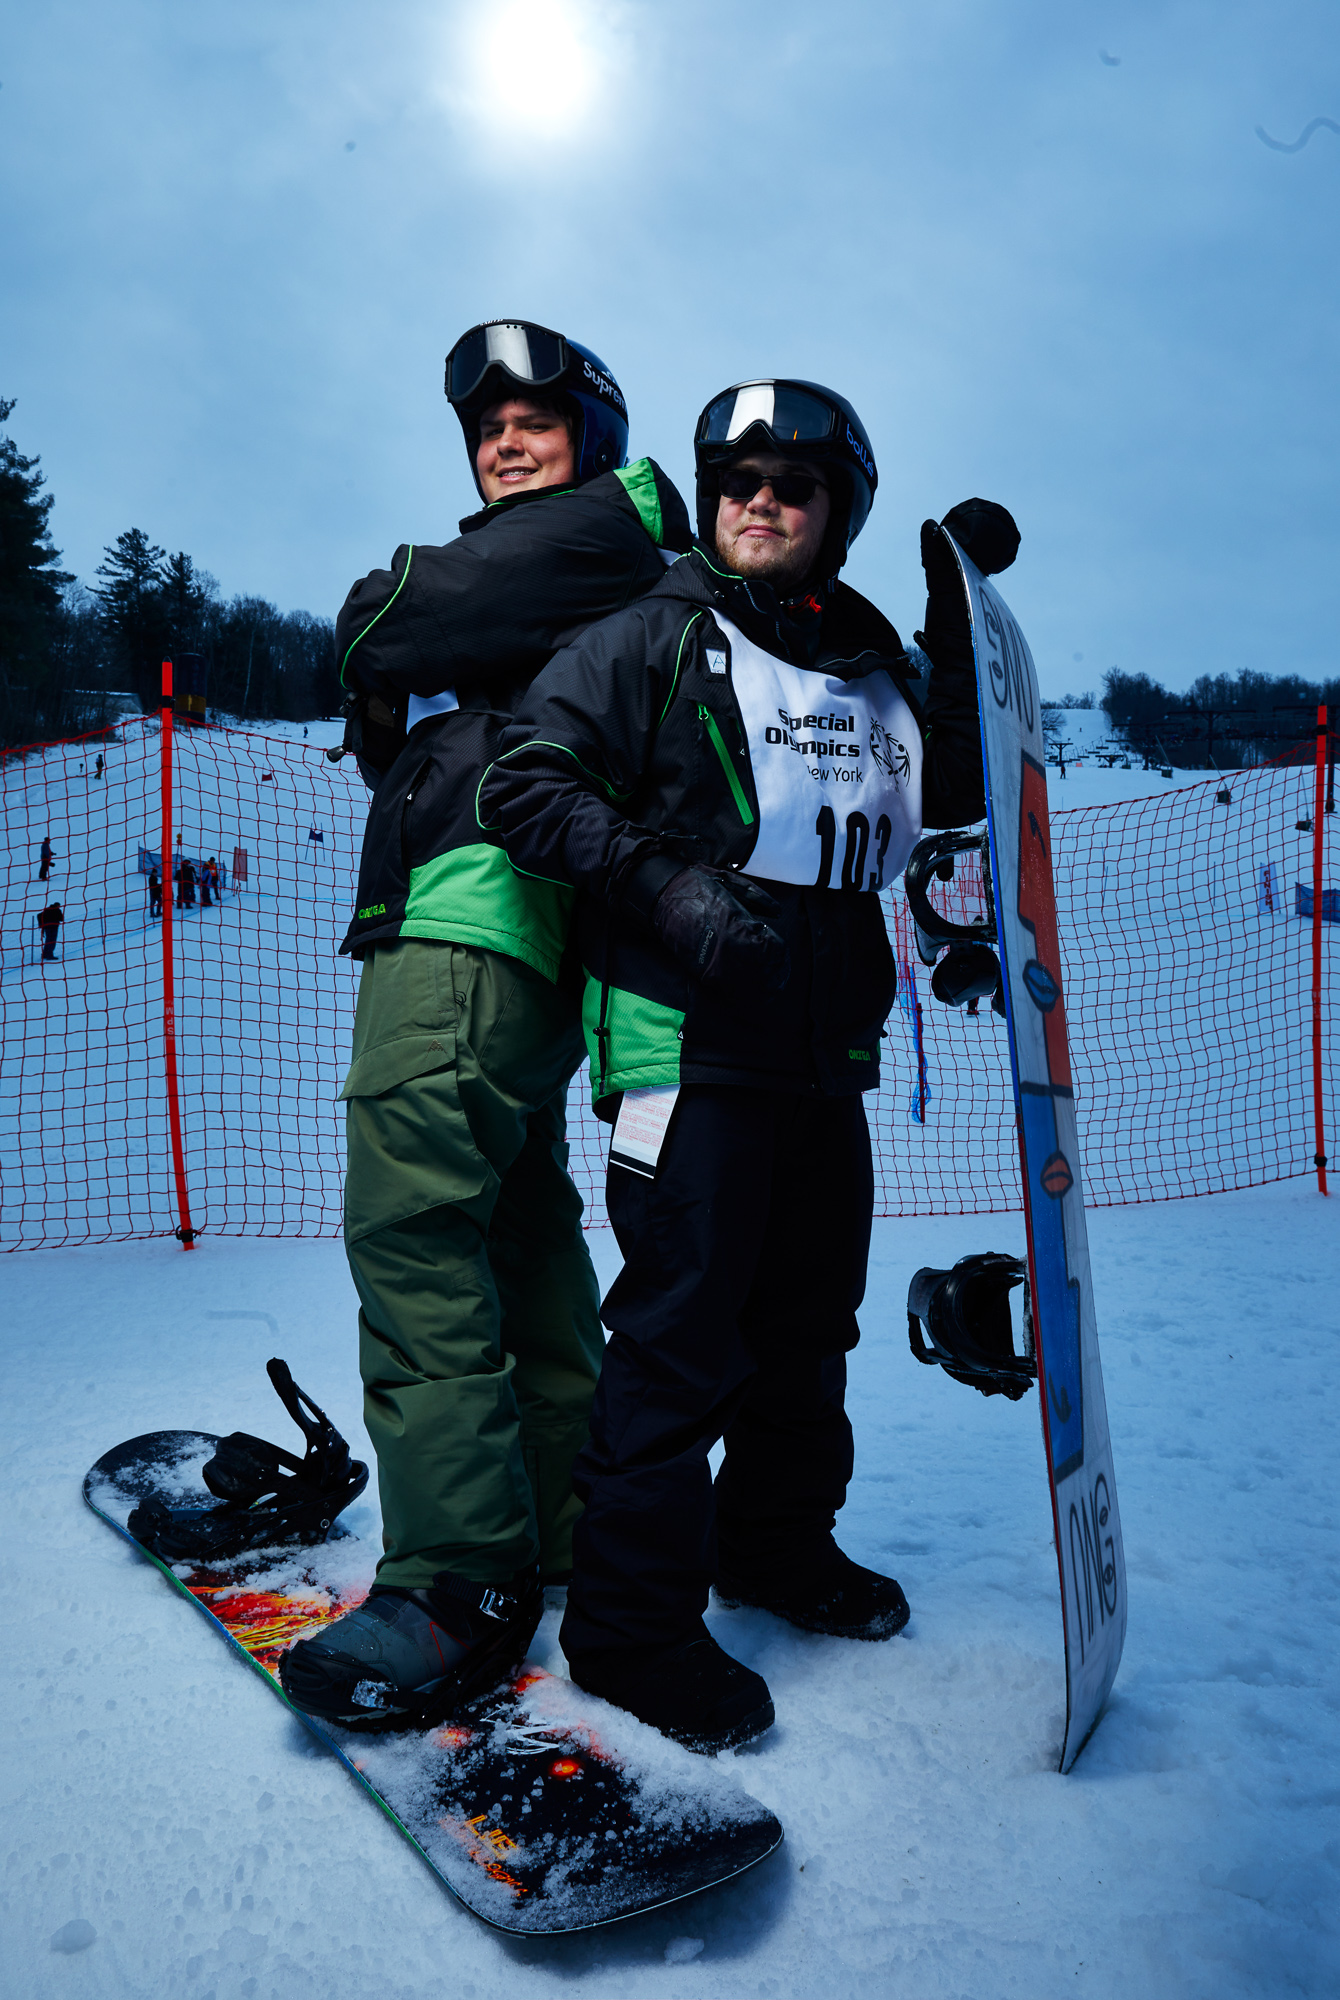 Two snowboarders stand back to back